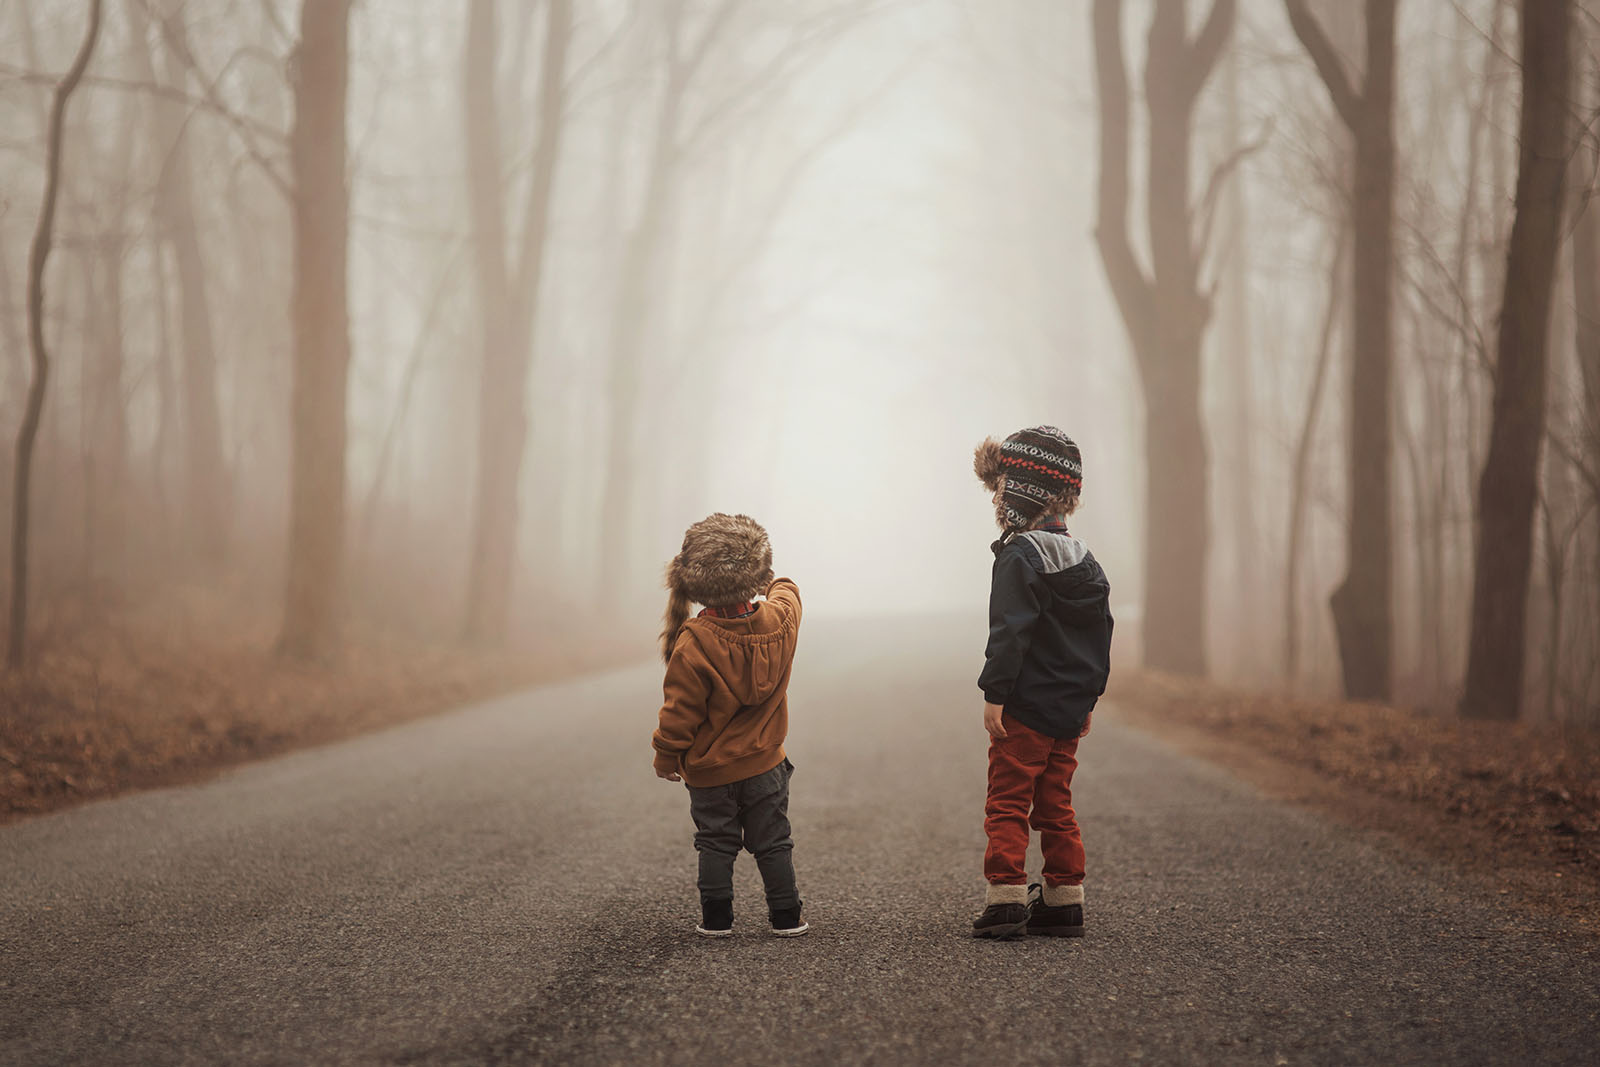 photograph of brothers walking down a road by Meg Loeks